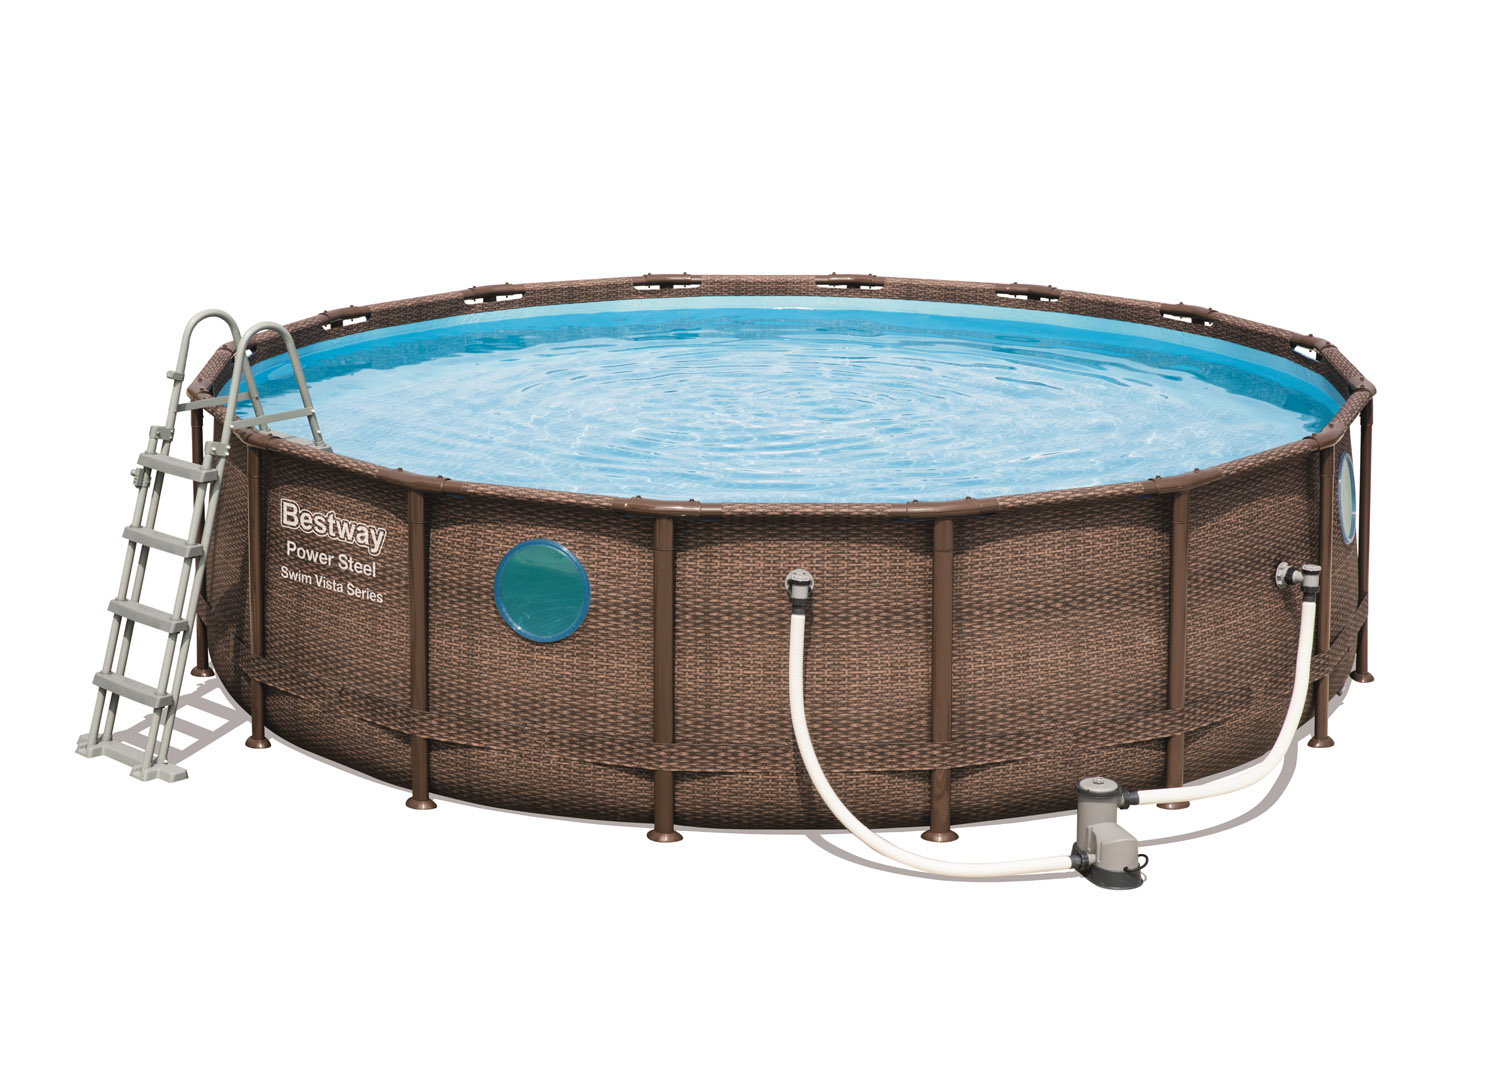 Bestway Power Steel Swim Vista Series Pool Set 56..